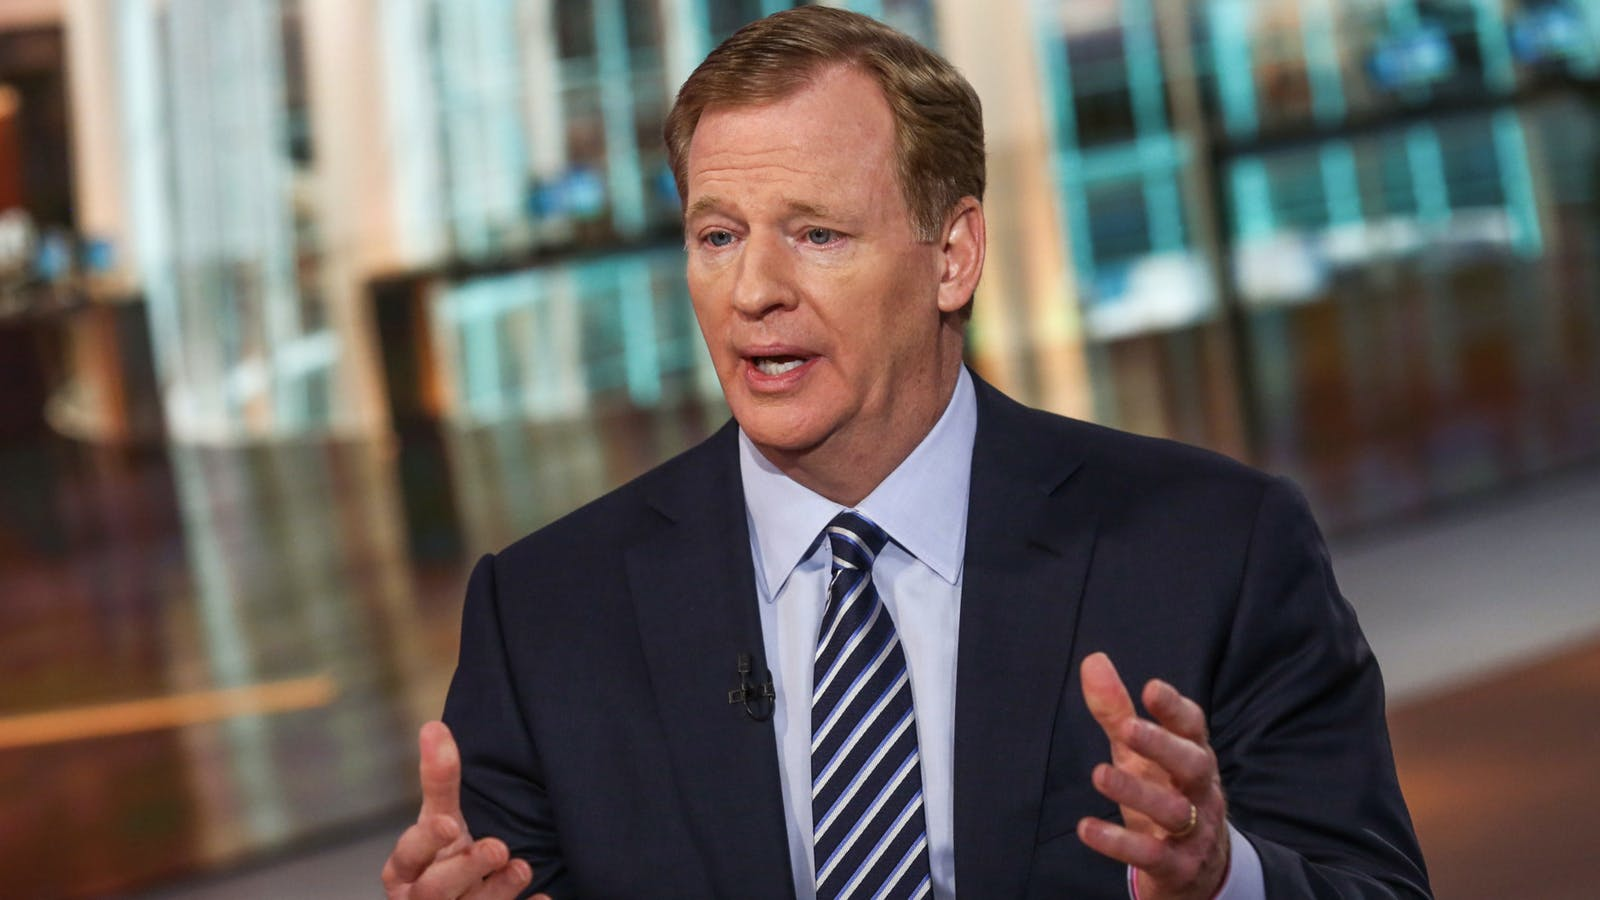 NFL commissioner Roger Goodell. Photo by Bloomberg